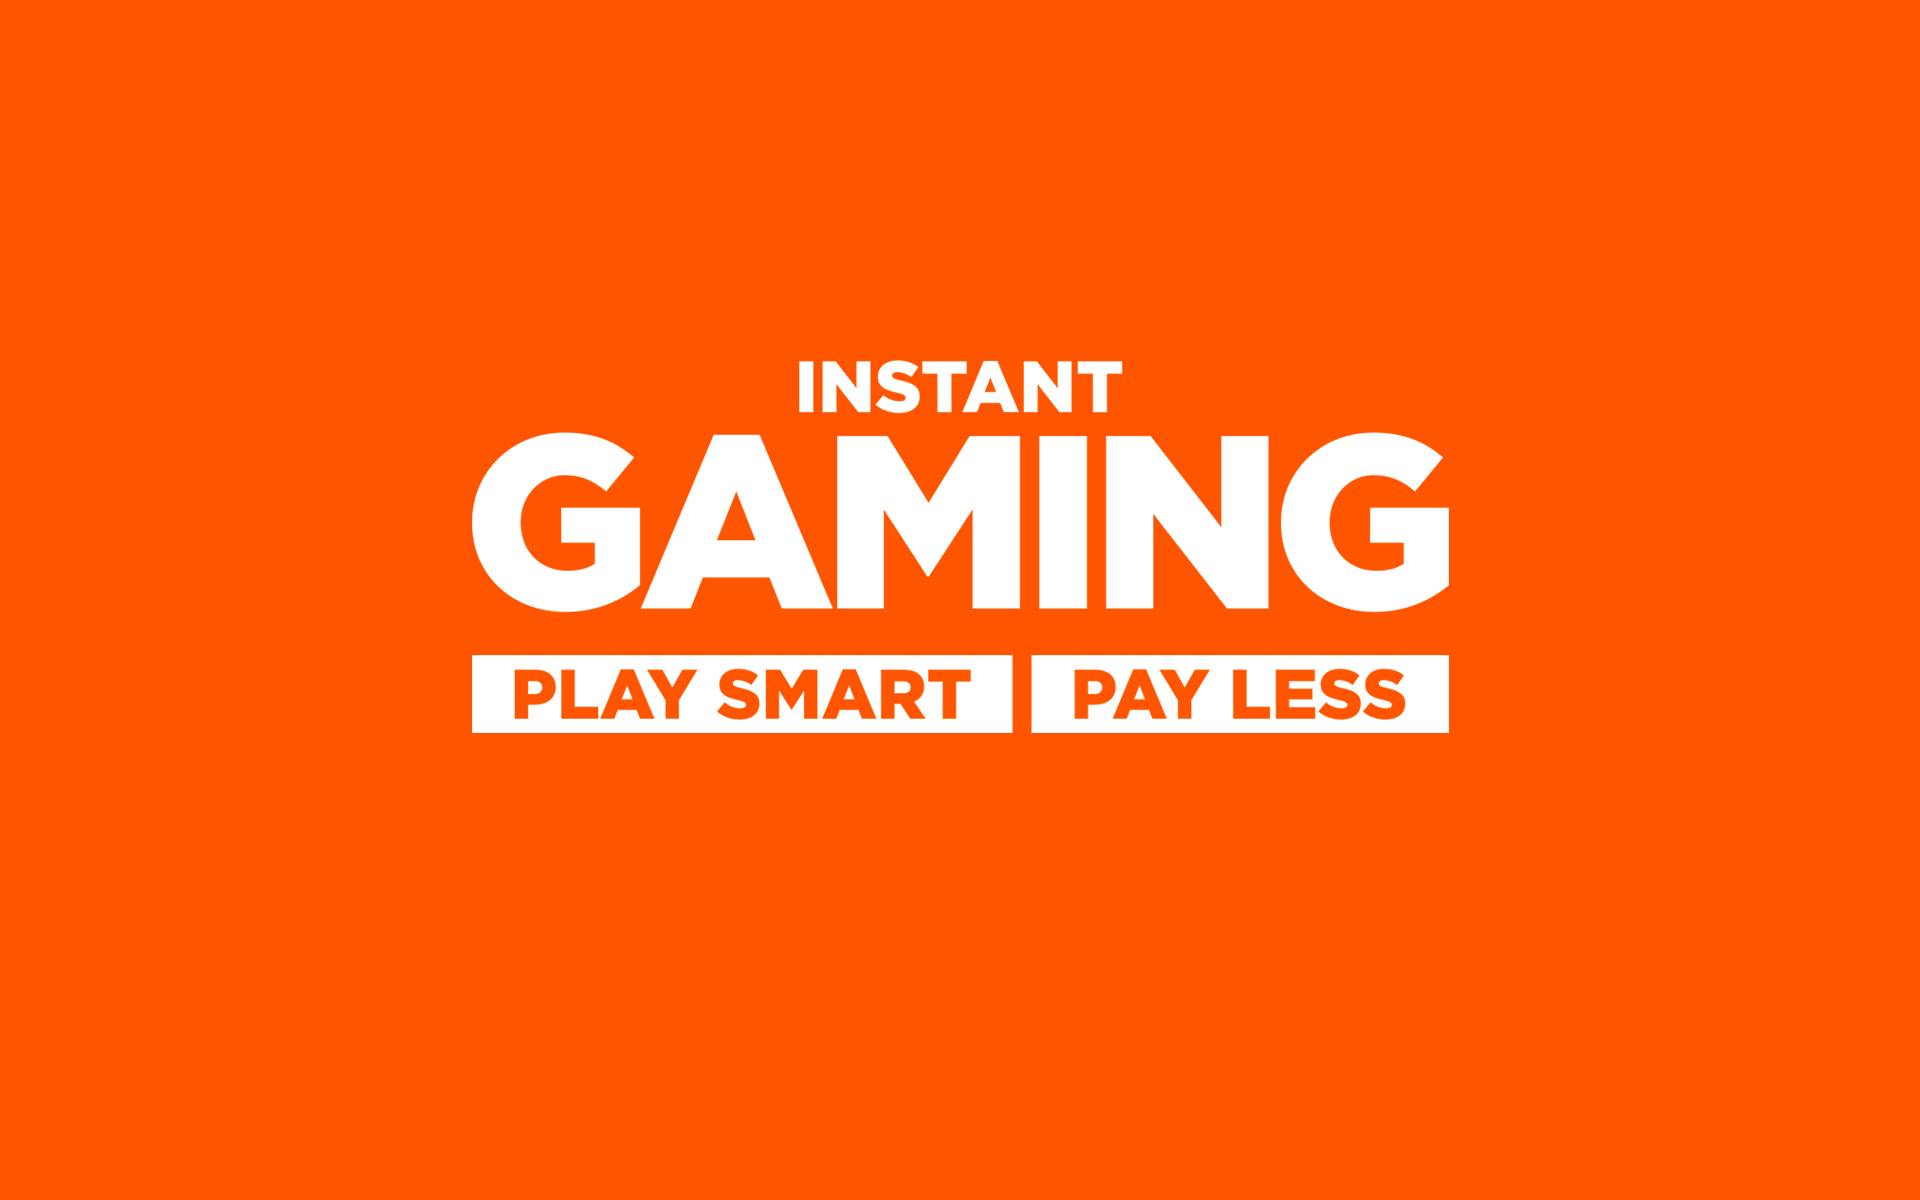 Instant Gaming logo 1920 x 1080